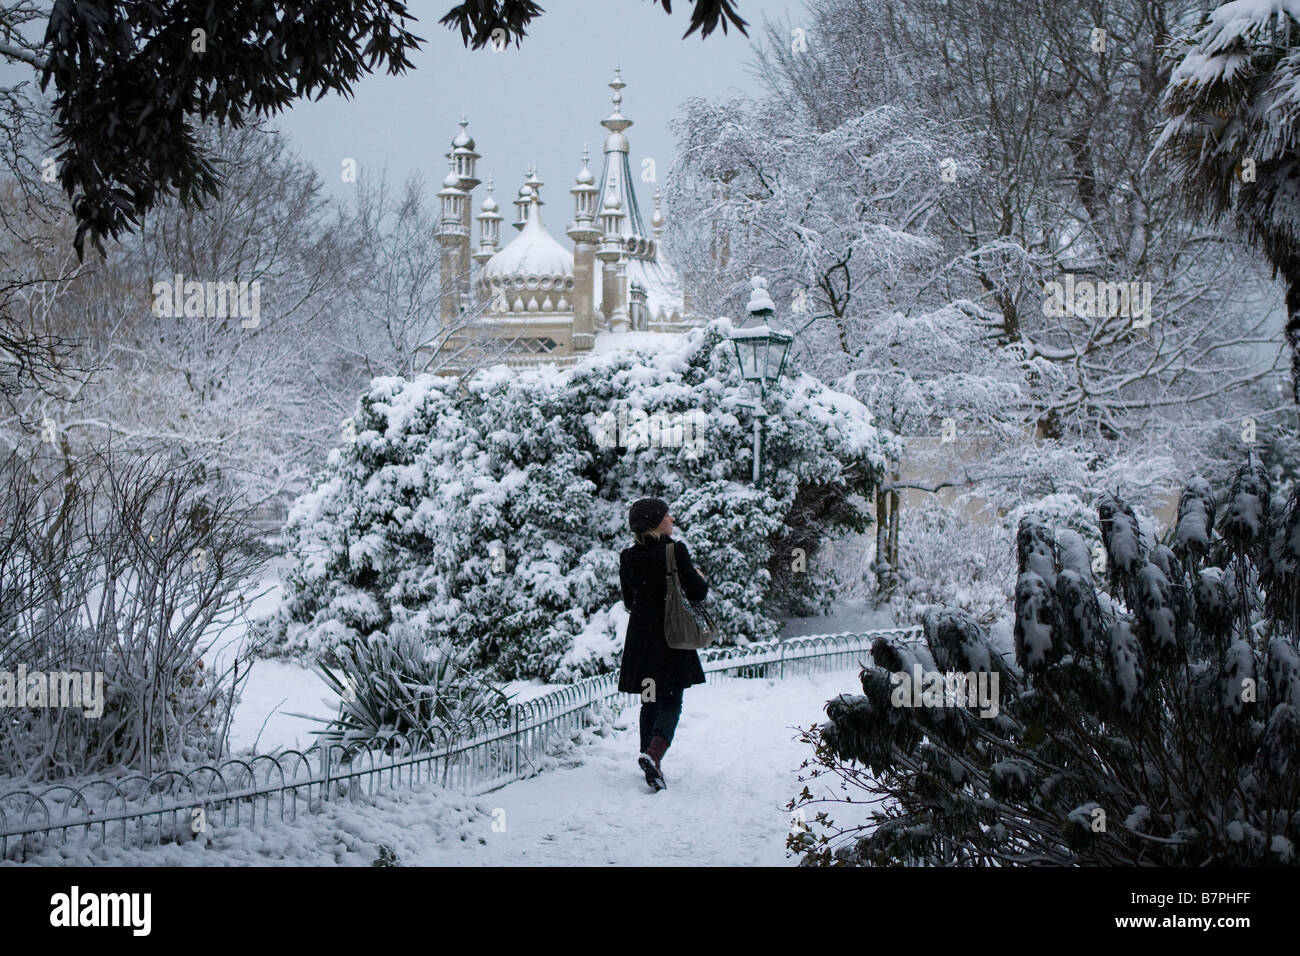 A young woman walks through the snow covered gardens of the Royal Pavilion Brighton in the early morning. Stock Photo